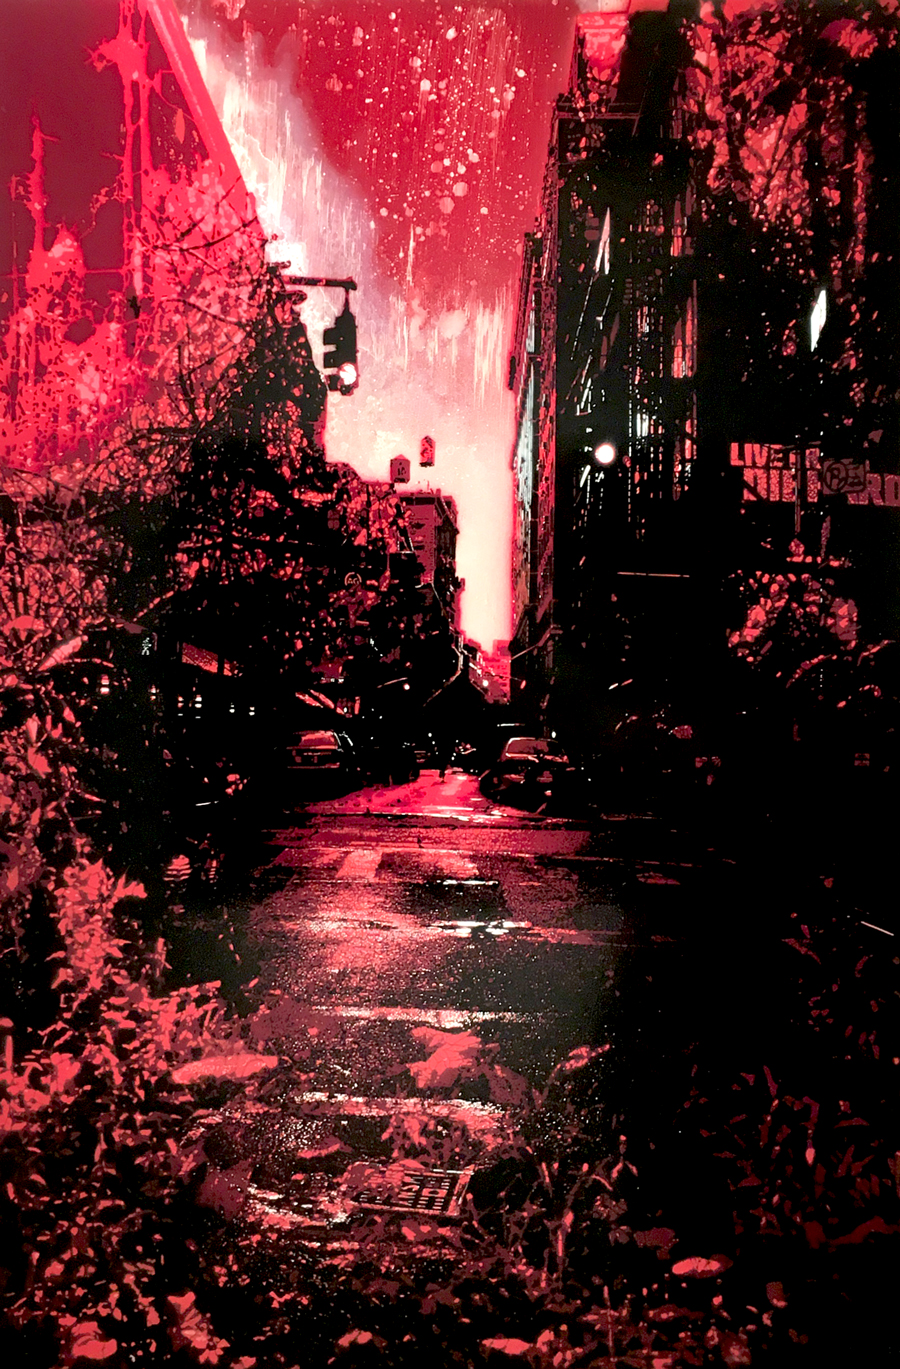 """Concrete Jungle #2 (Red) , hand-cut, multi-layered stencils with spray paint and enamel on panel, 36"""" x 24"""", $4,000"""